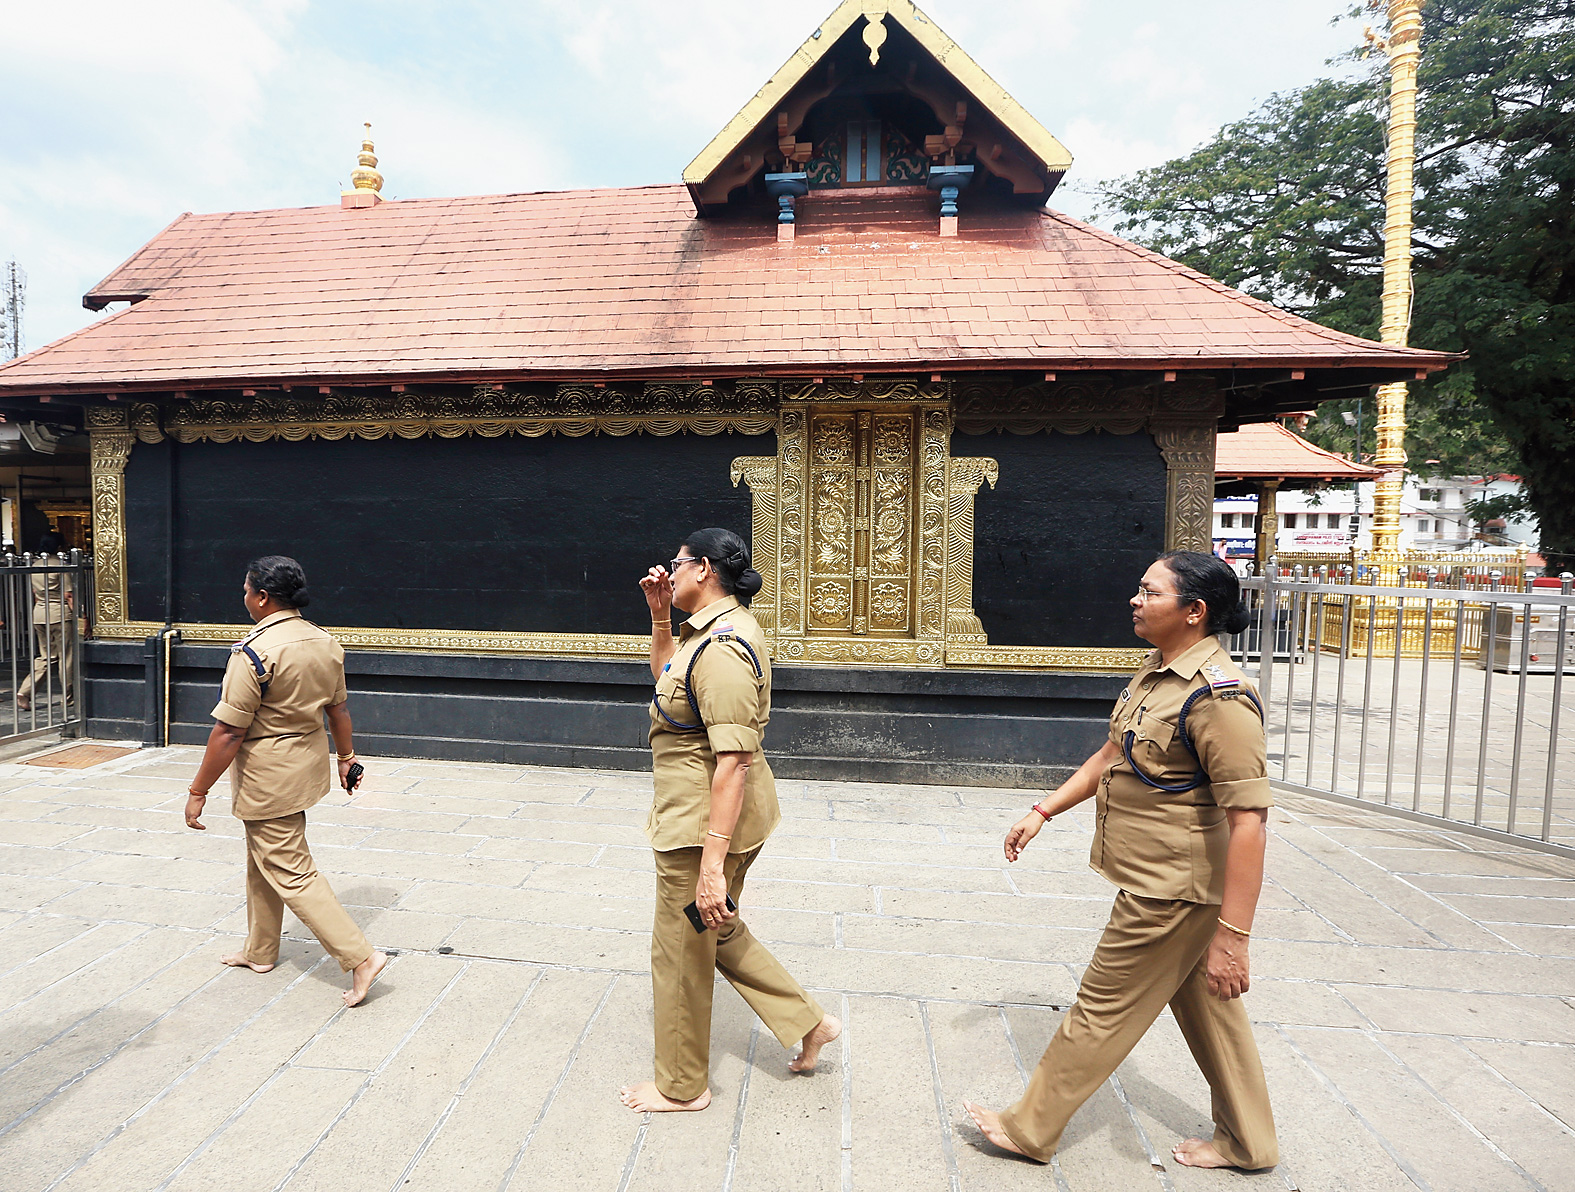 Policewomen over the age of 50 deployed at the Sabarimala temple circumambulate the main shrine on Monday, when it was opened for pilgrims for the second time since the Supreme Court verdict allowing women of all ages to enter.